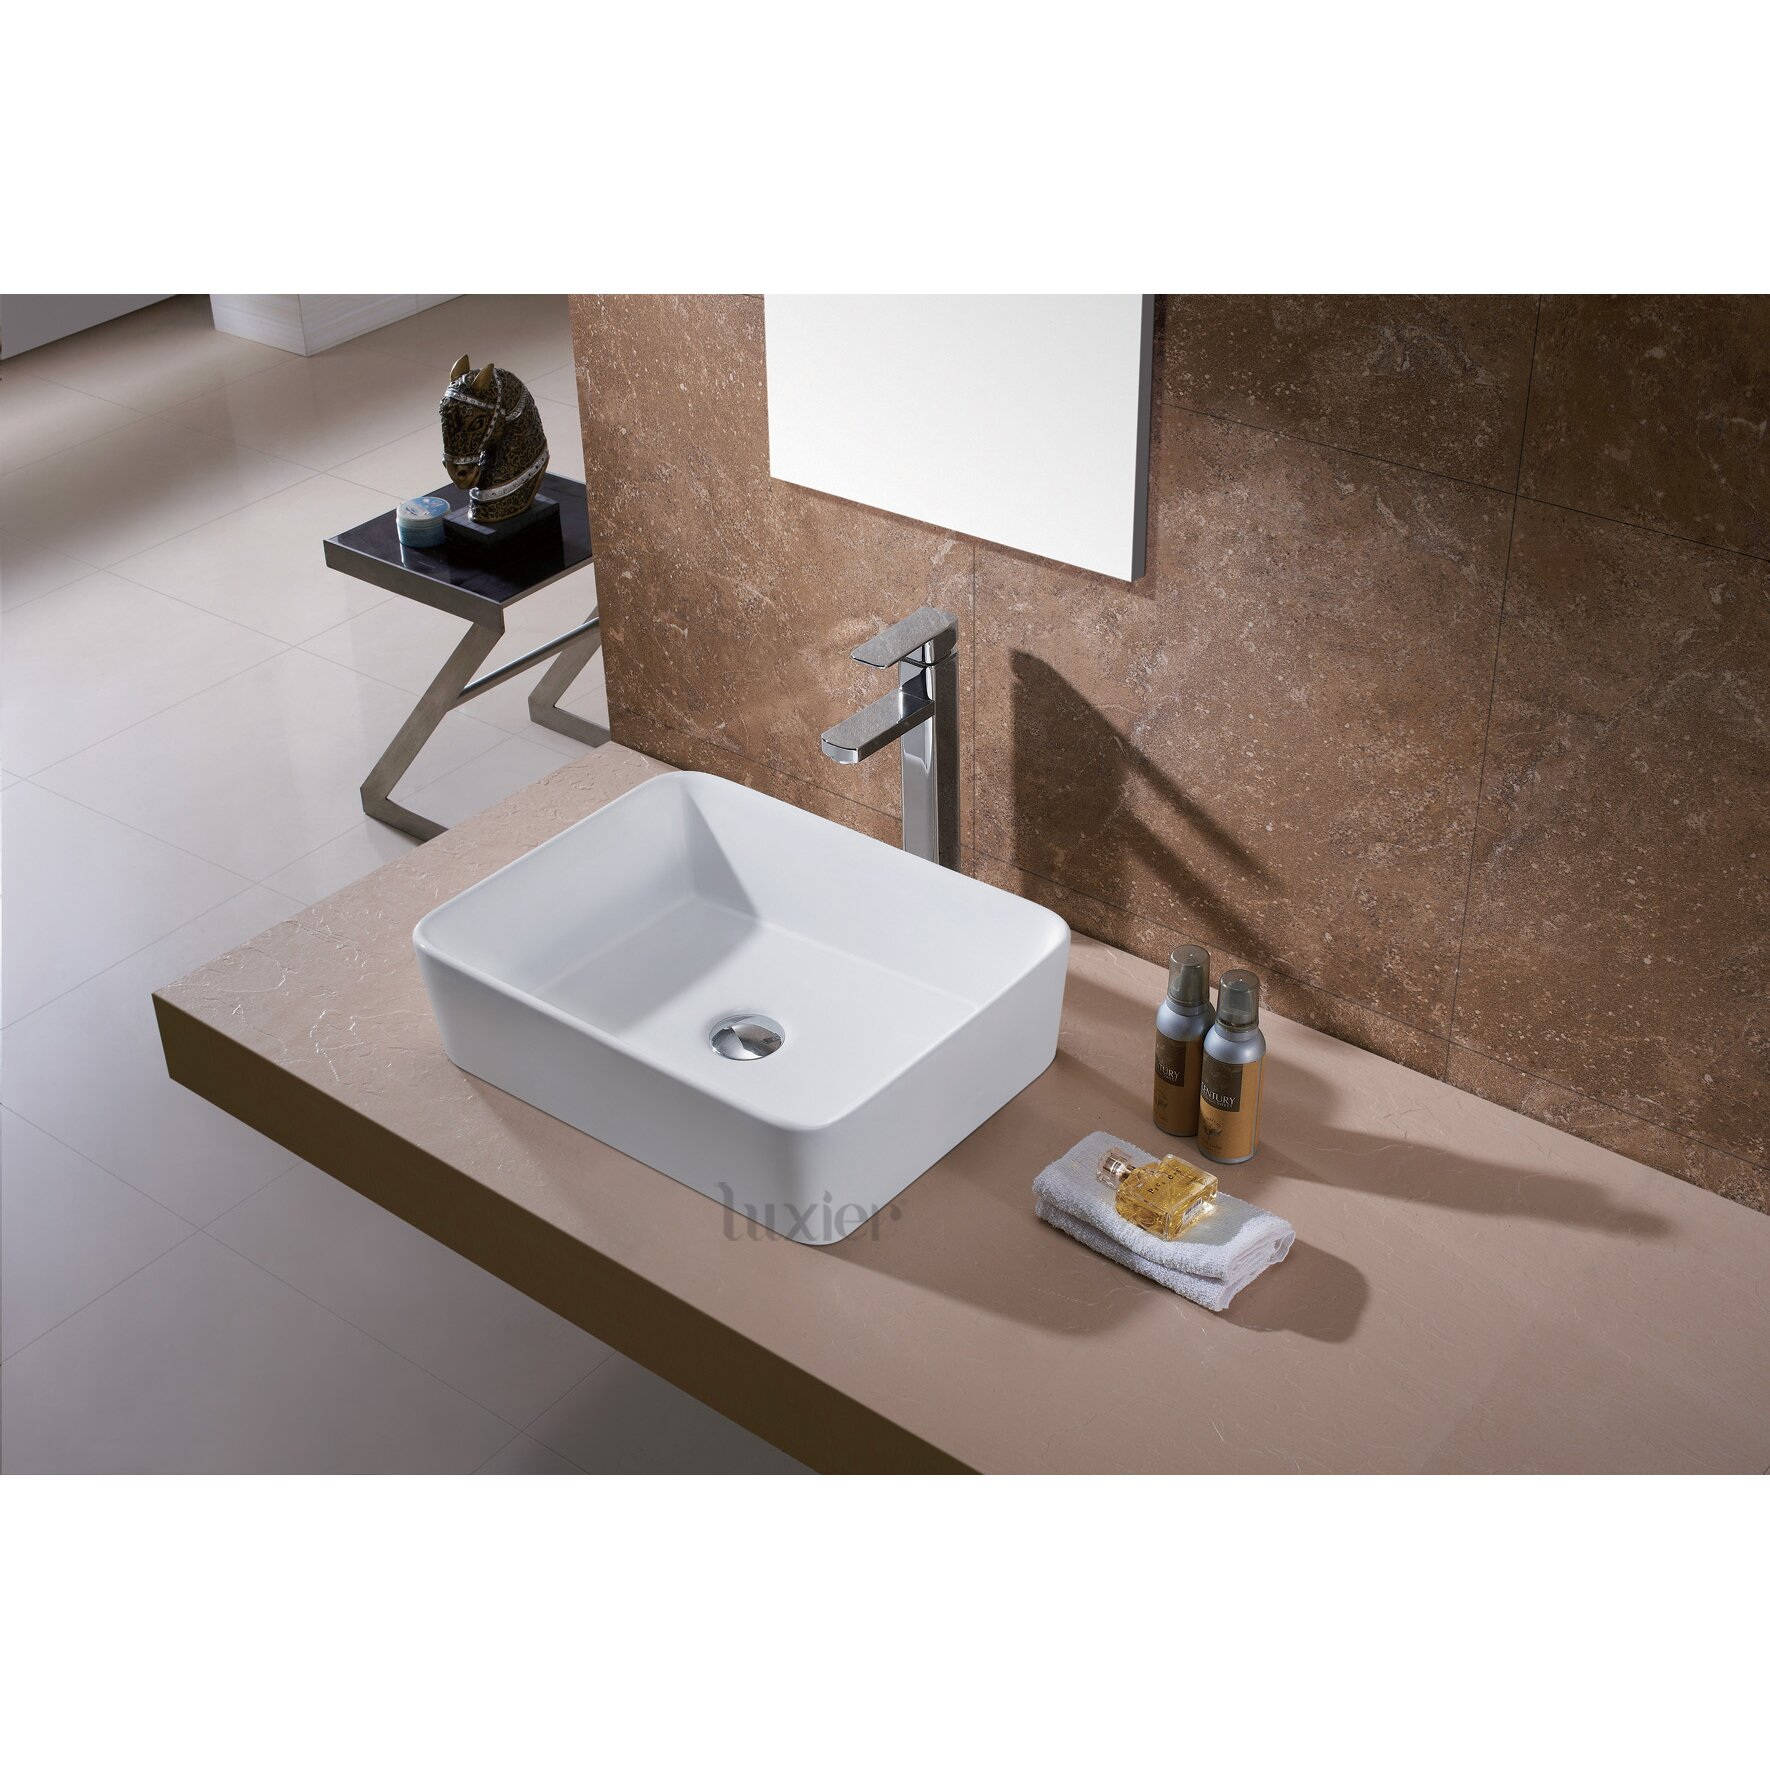 Porcelain-Ceramic-Vessel-Vanity-Bathroom-Sink-L-013.jpg